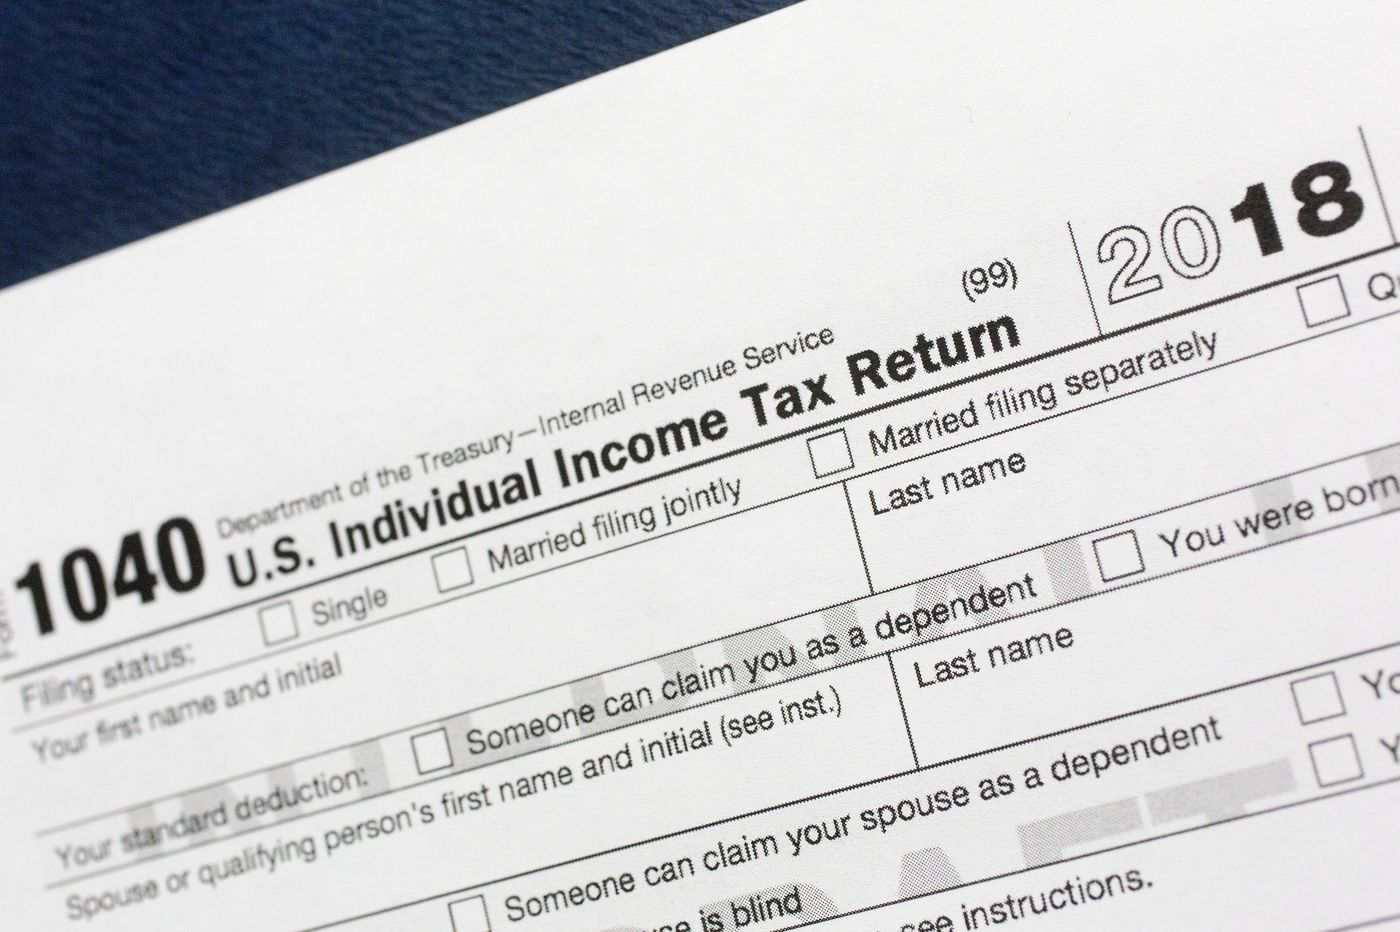 White House: IRS can issue tax refunds even amid government shutdown